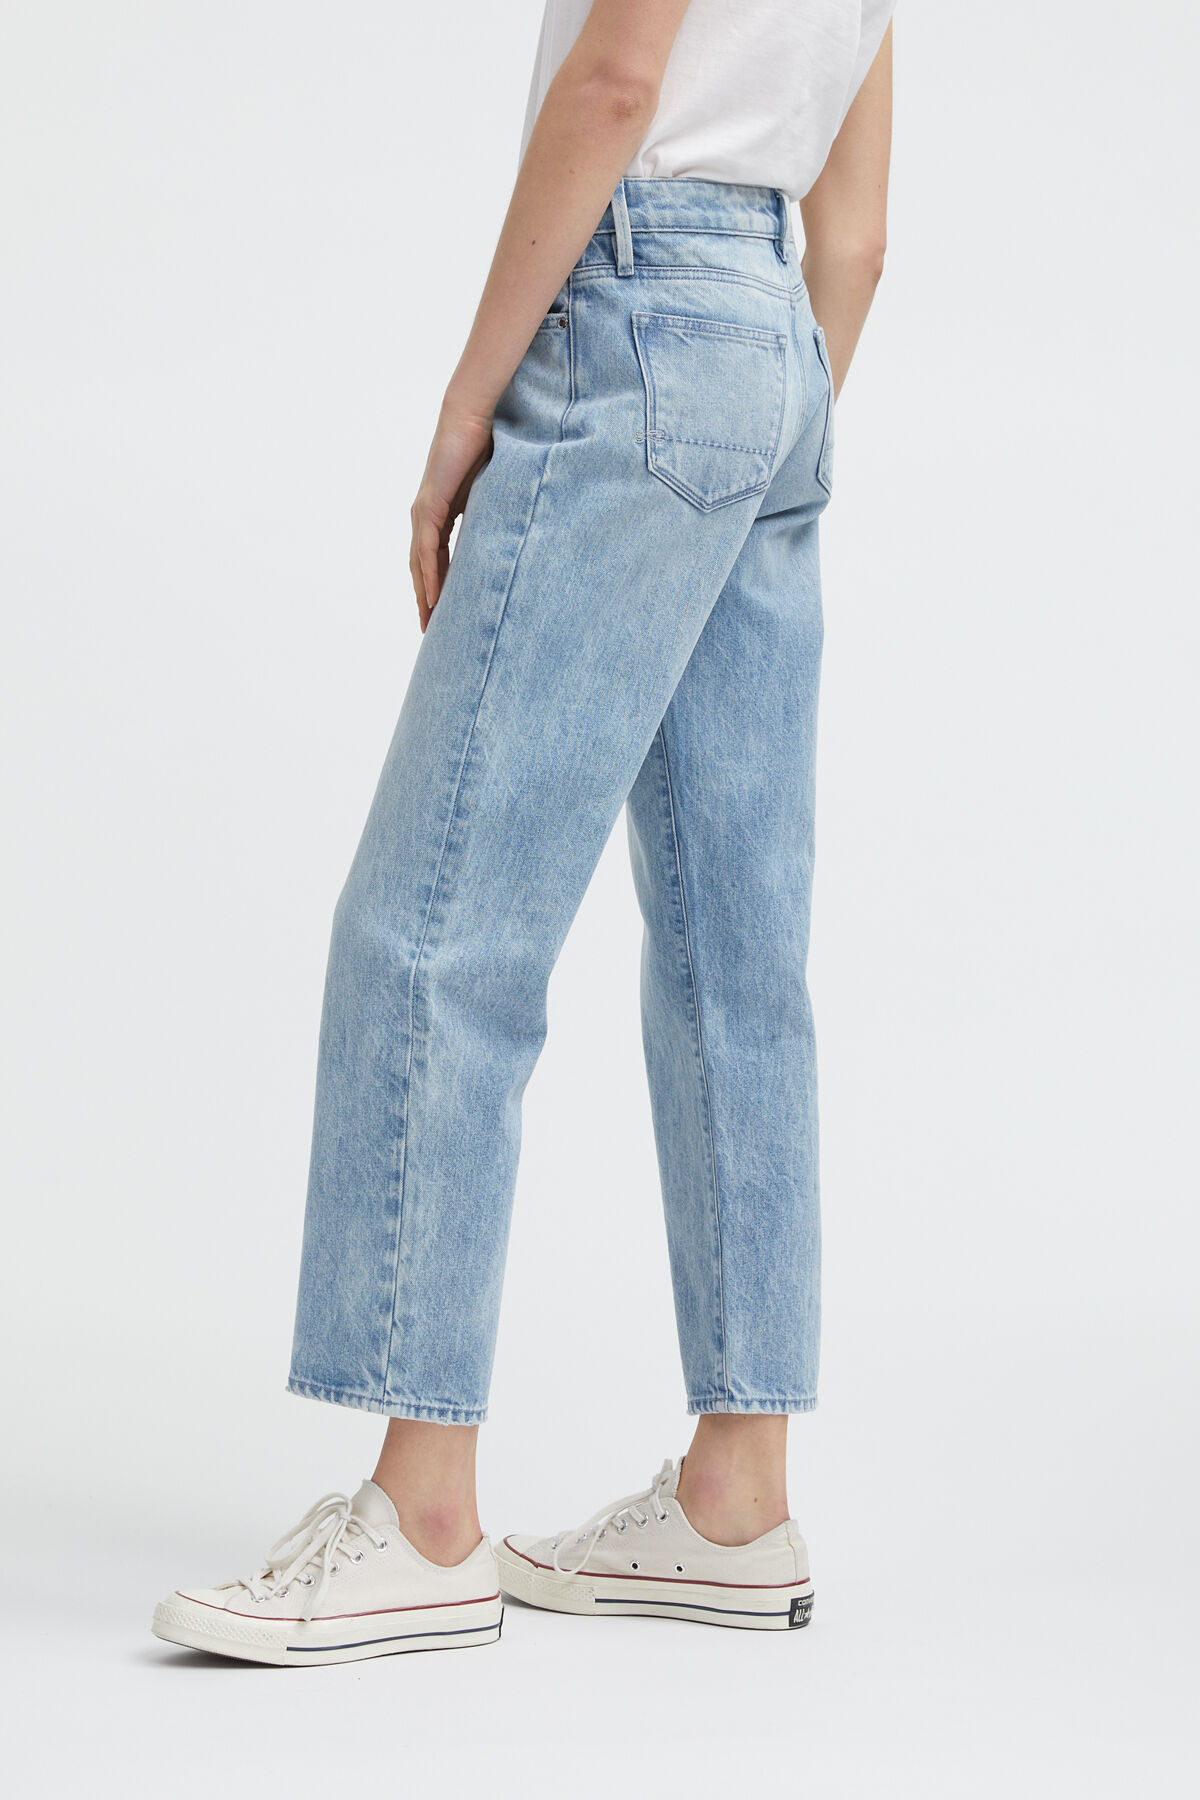 Bardot Straight Leg - Straight Fit Jeans - Back